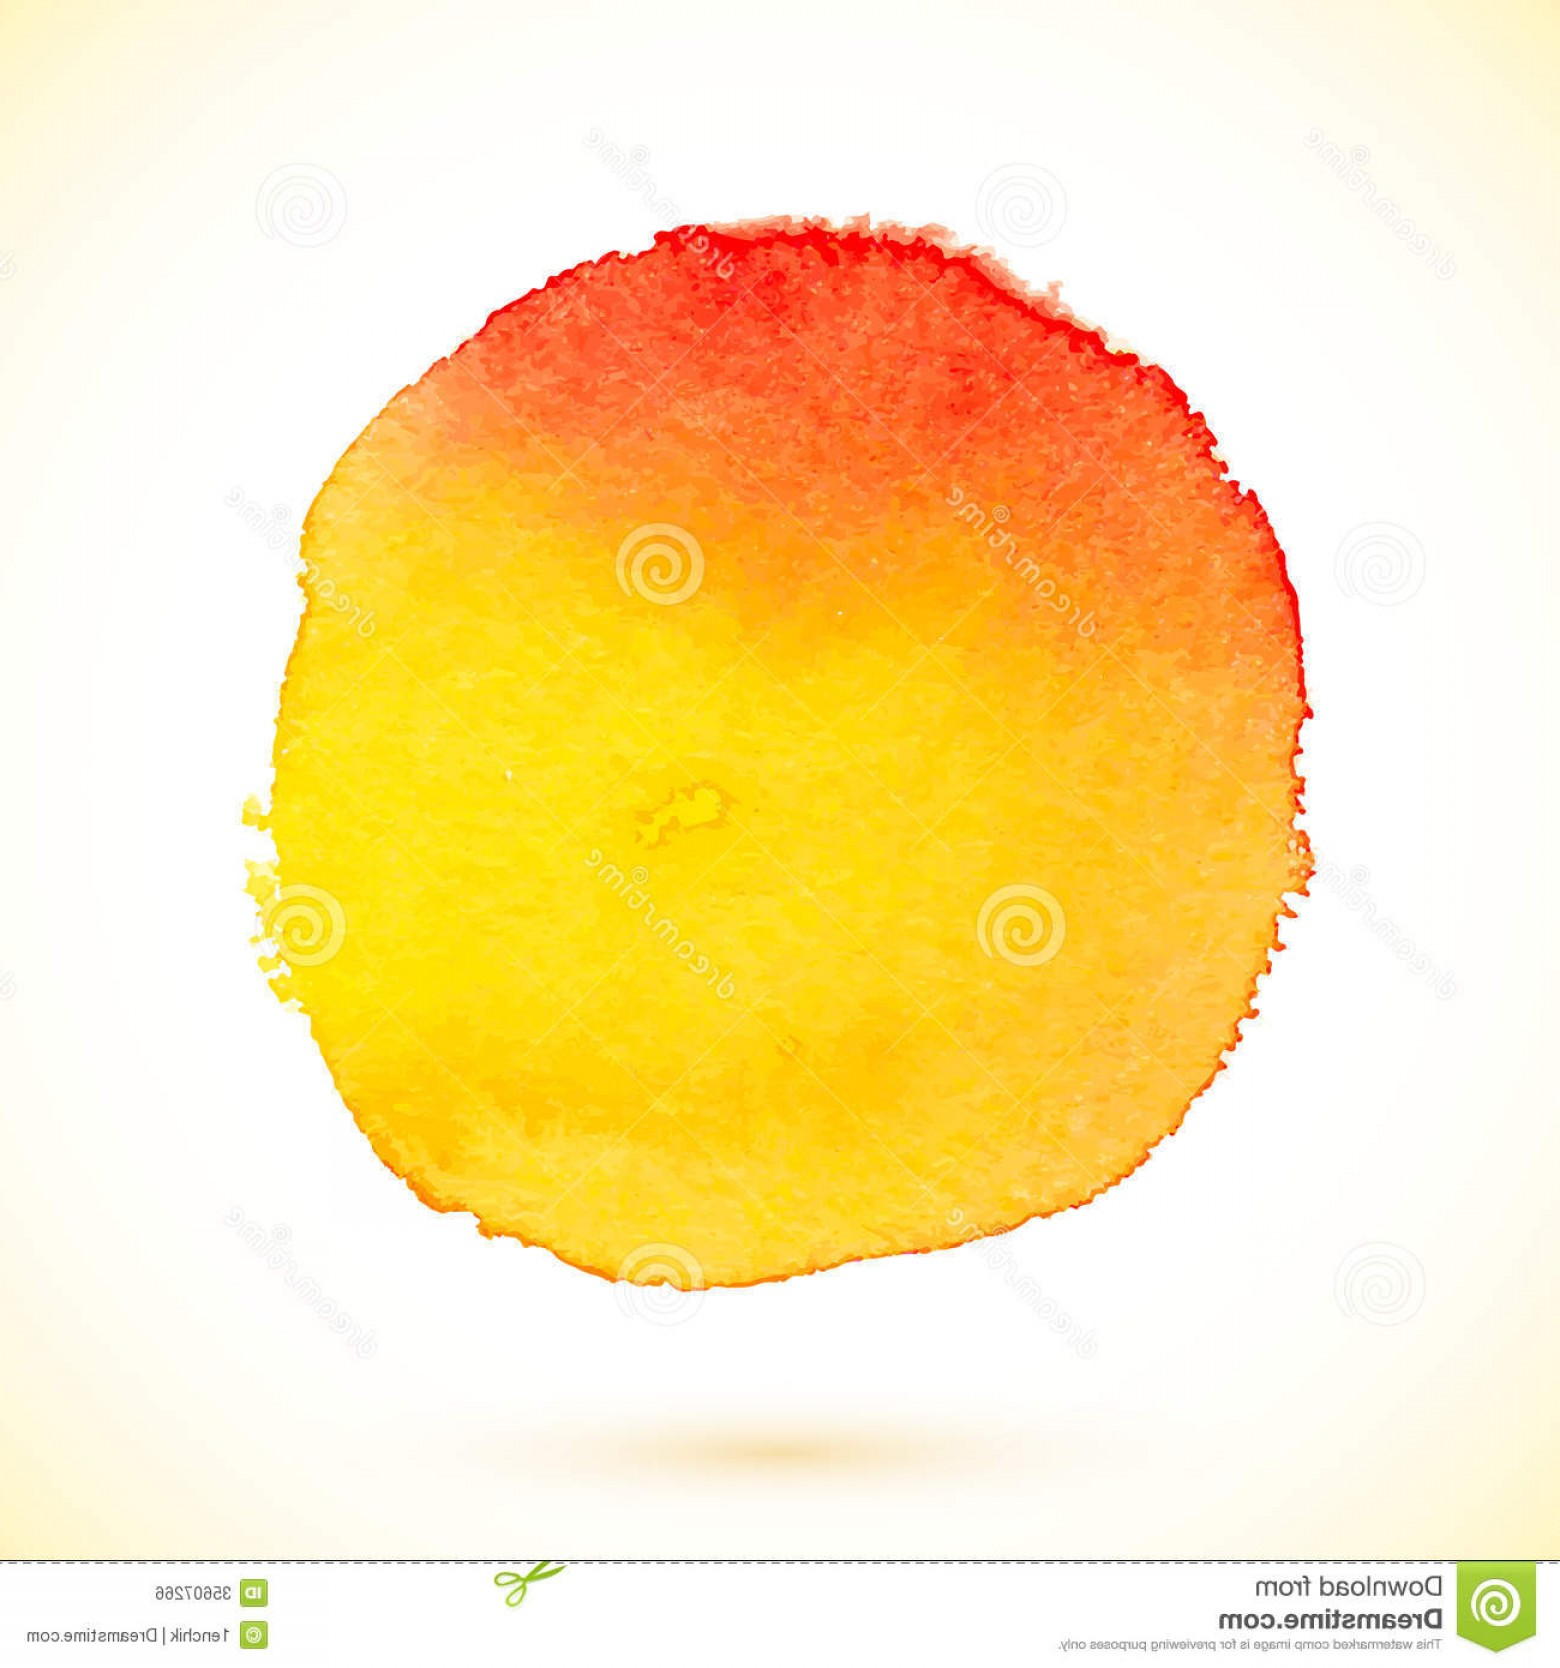 Orange Watercolor Vector Free: Royalty Free Stock Image Orange Vector Isolated Watercolor Paint Circle Textured Image